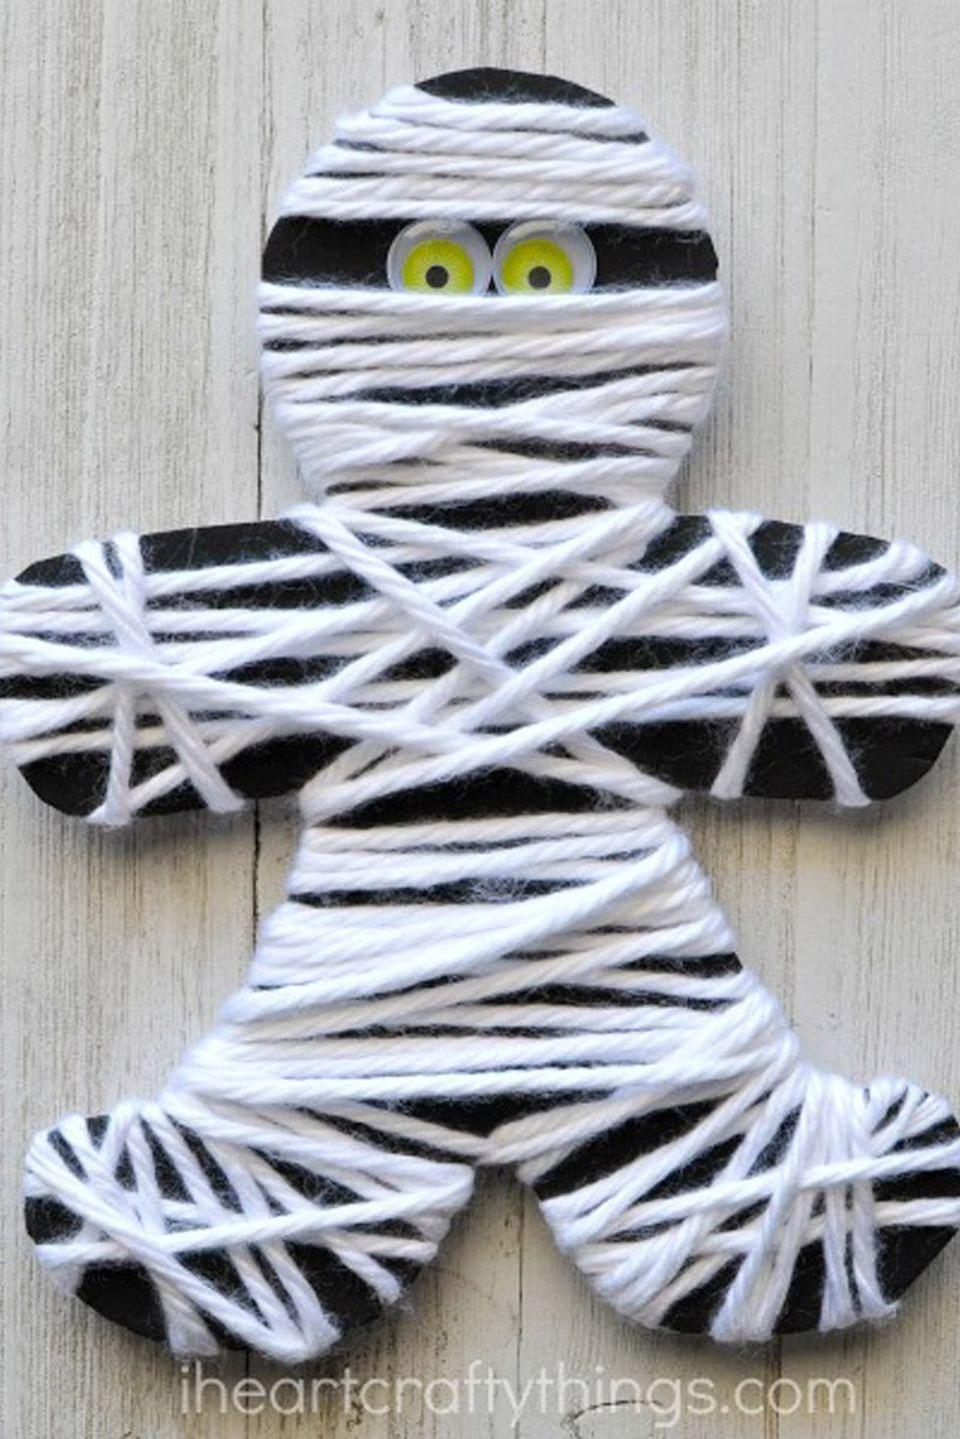 """<p>The only skill required for this cute mummy craft is to wrap string around a paper doll figure. The best part is, no matter which direction it goes, it will always be right! String together multiples for a creative garland.</p><p><strong>Get the tutorial at <a href=""""https://iheartcraftythings.com/yarn-wrapped-mummy-craft.html"""" rel=""""nofollow noopener"""" target=""""_blank"""" data-ylk=""""slk:I Heart Crafty Things"""" class=""""link rapid-noclick-resp"""">I Heart Crafty Things</a>.</strong> </p>"""